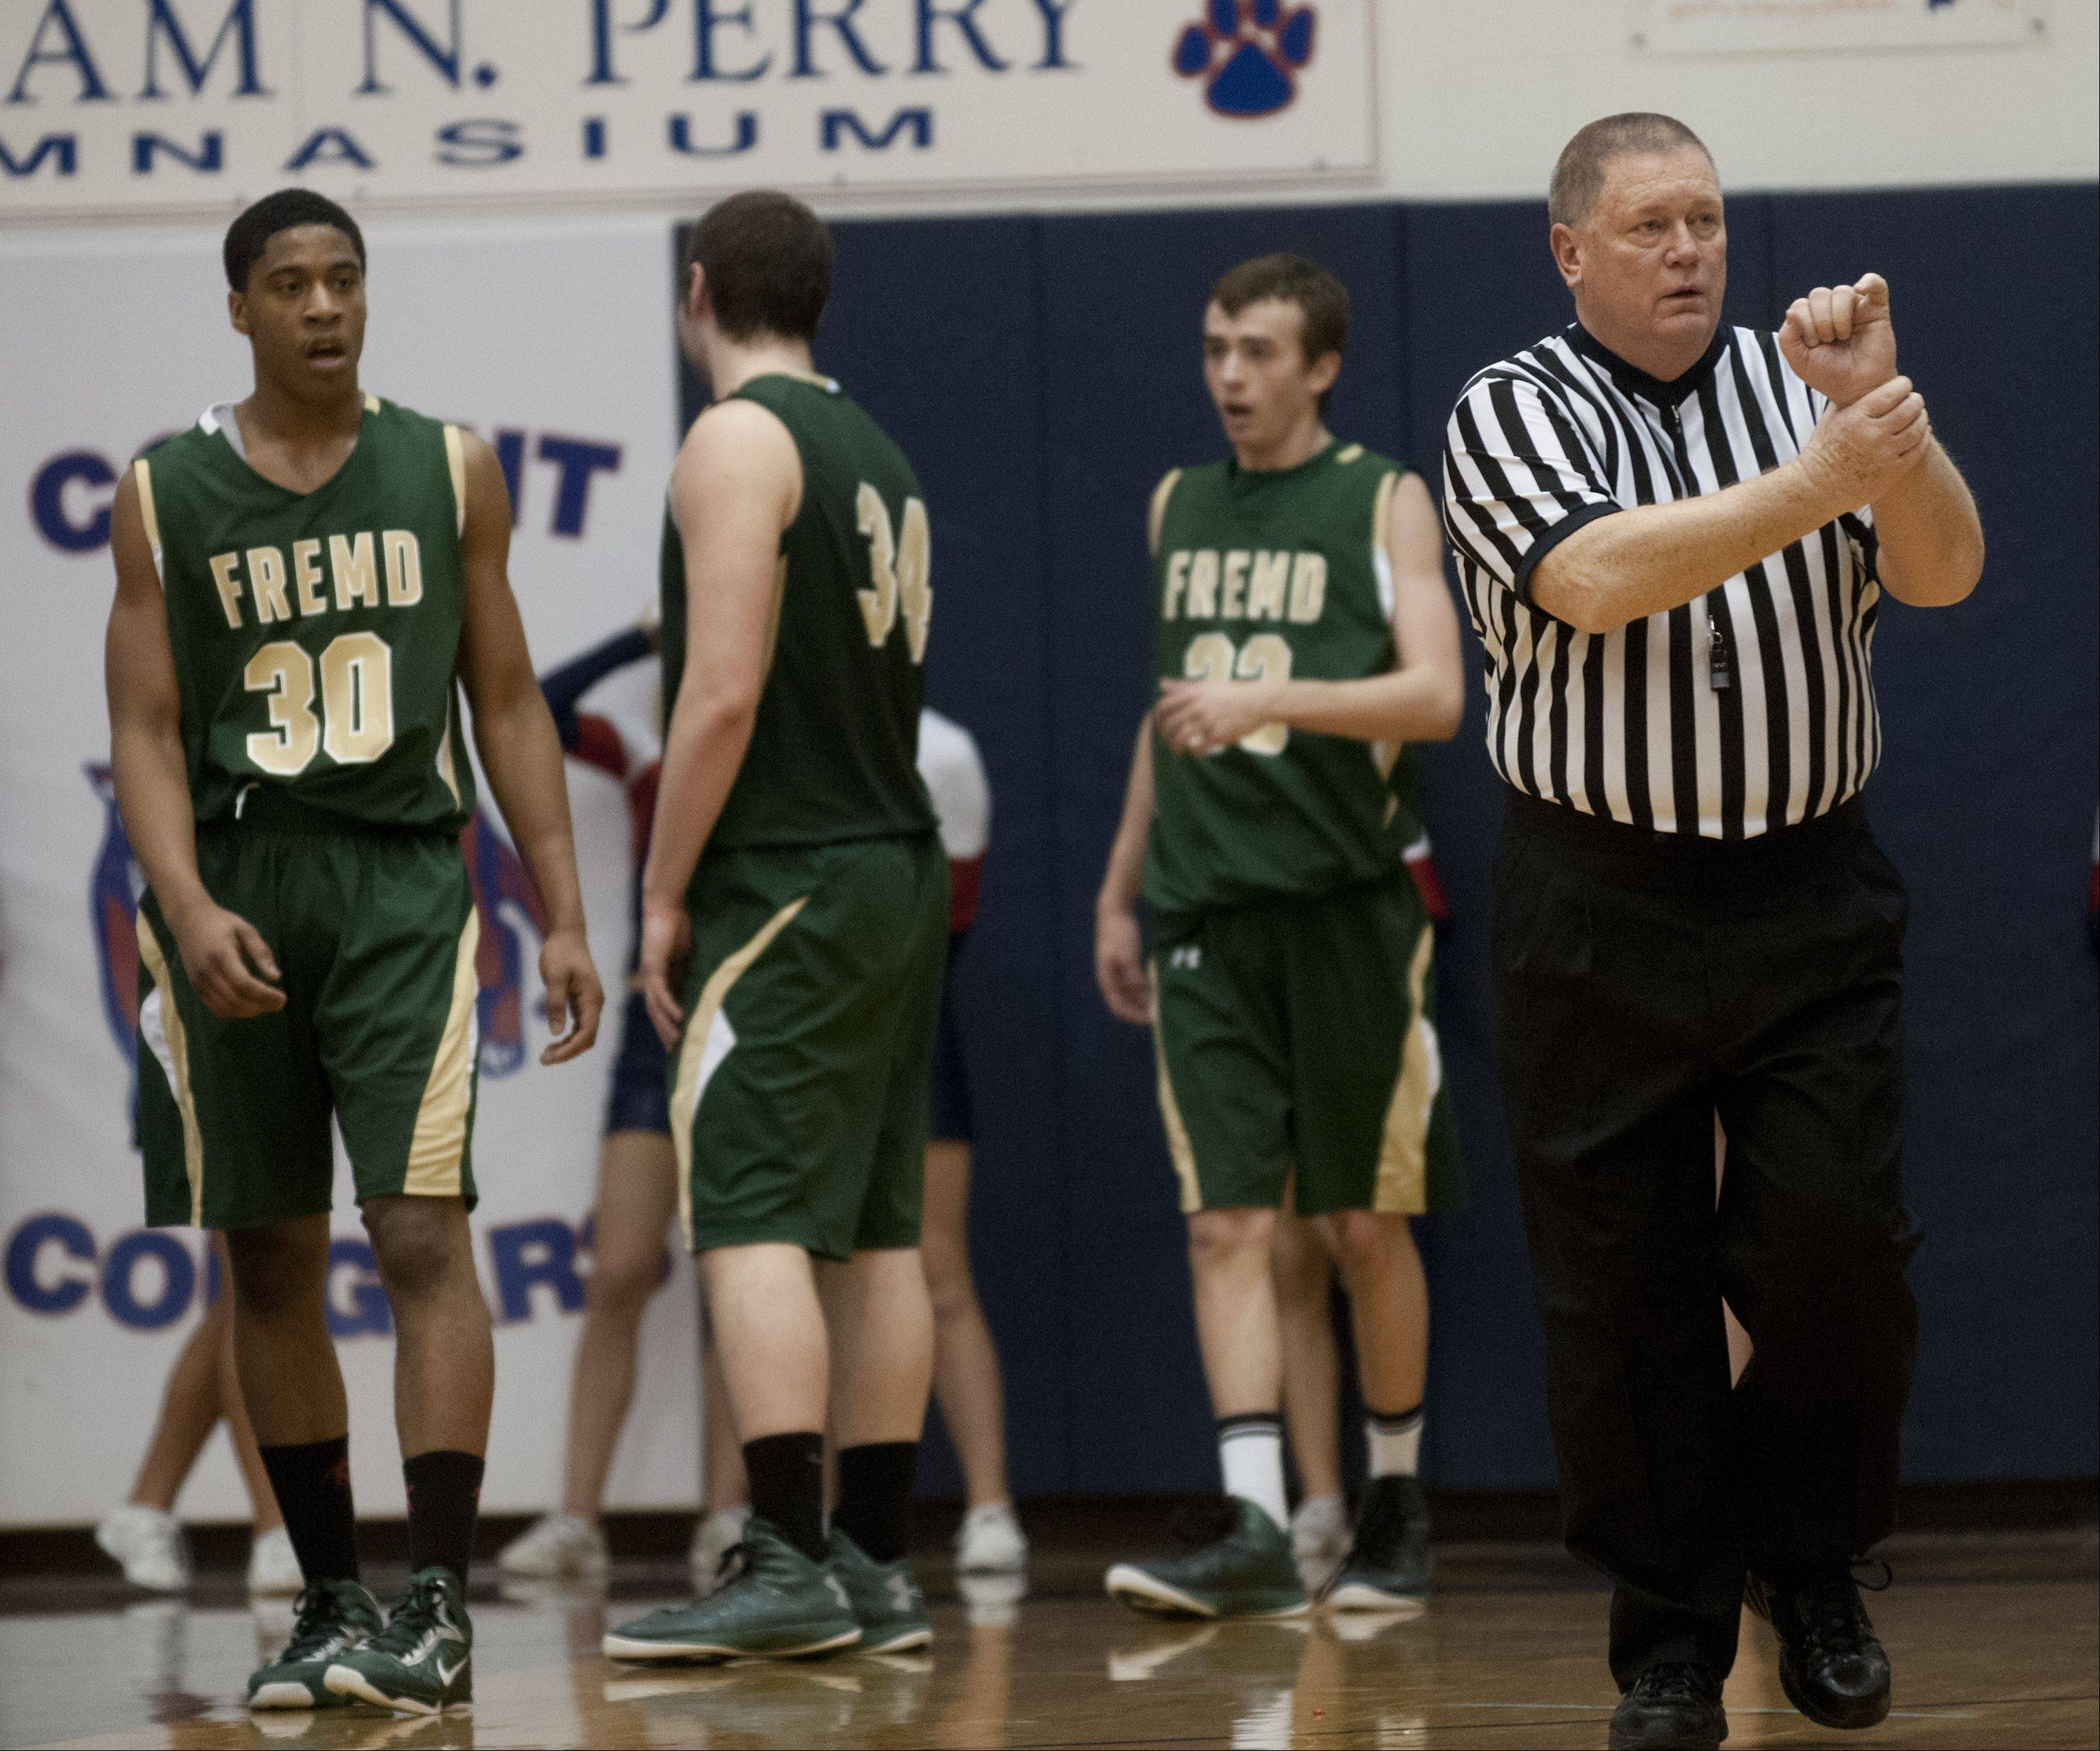 Longtime IHSA referee Rick Bieterman calls a foul during a game between Fremd and Conant high schools.